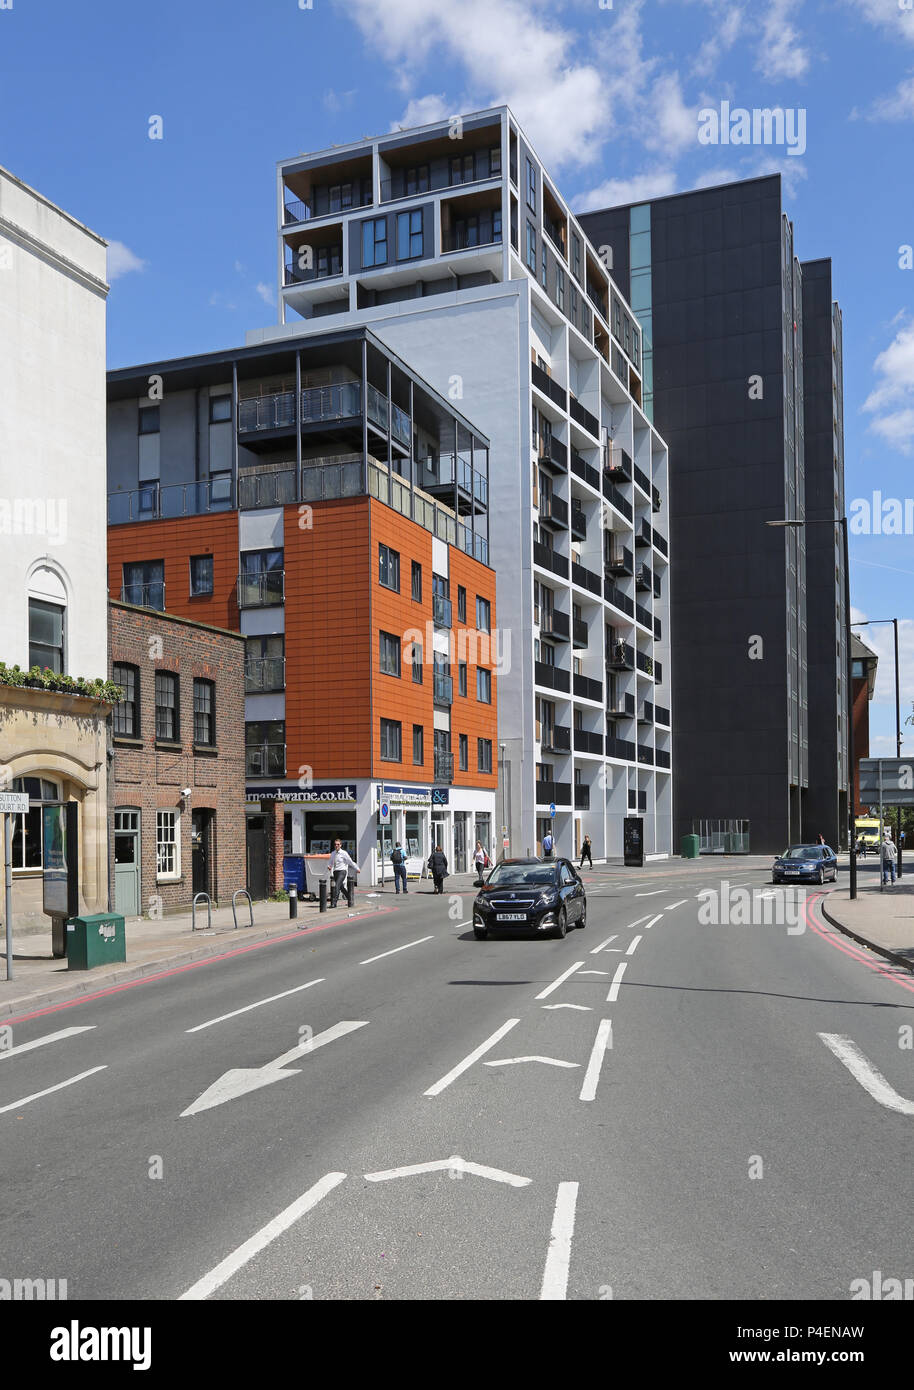 New apartment blocks on Sutton Court Road in Sutton, Surrey, UK. Shows cars on the one-way system in the foreground. - Stock Image